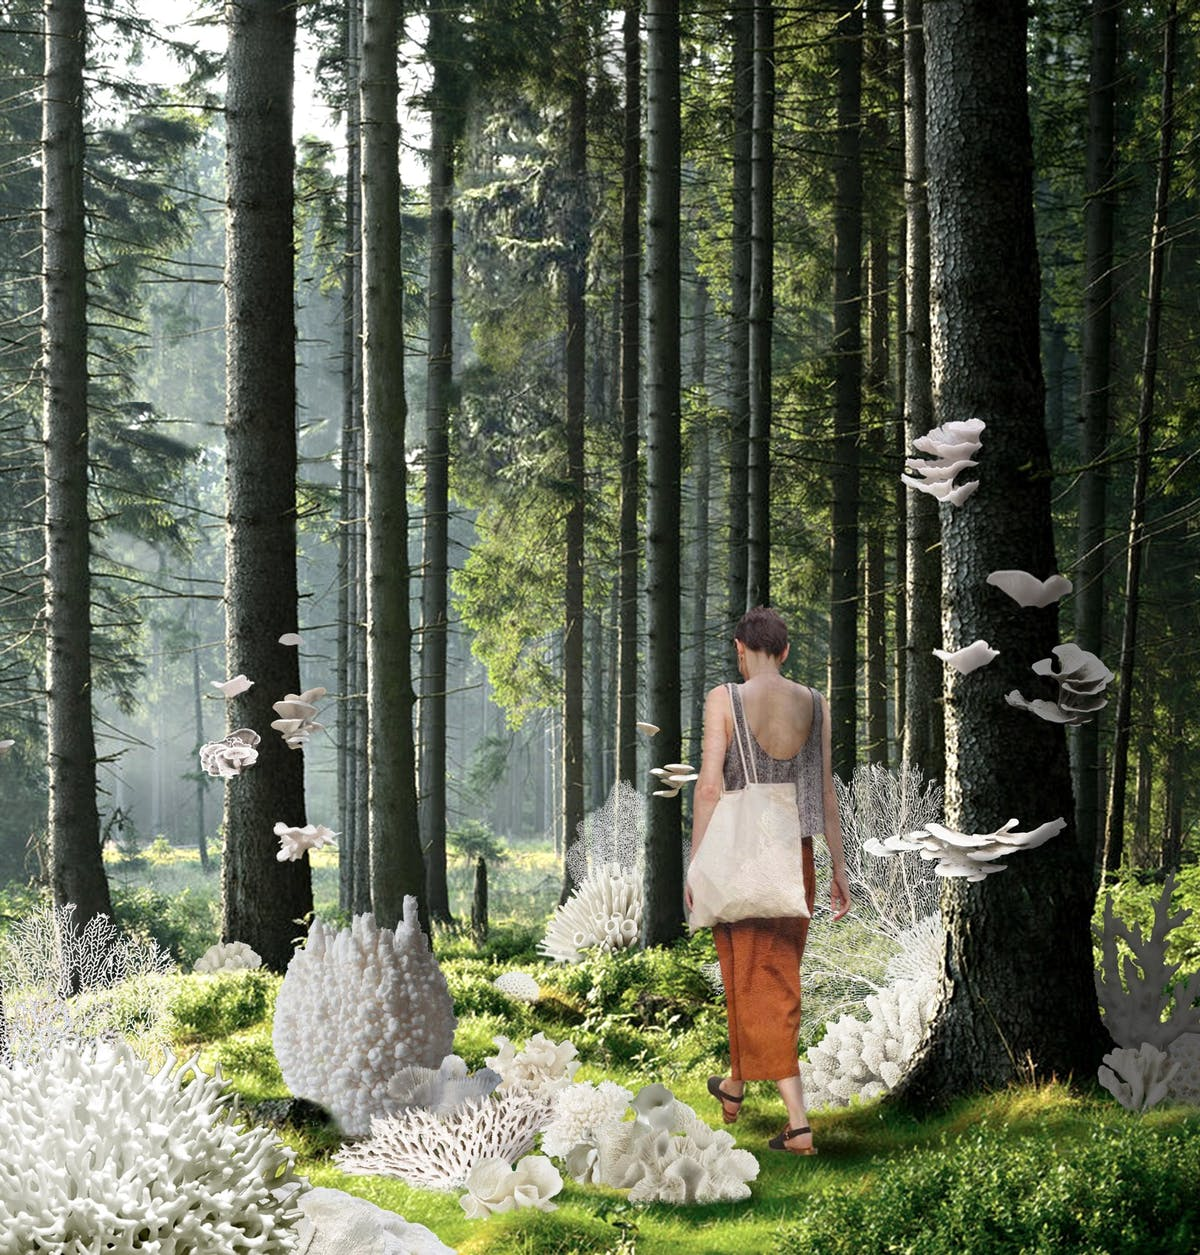 Five landscape art installations selected for 2020 ...